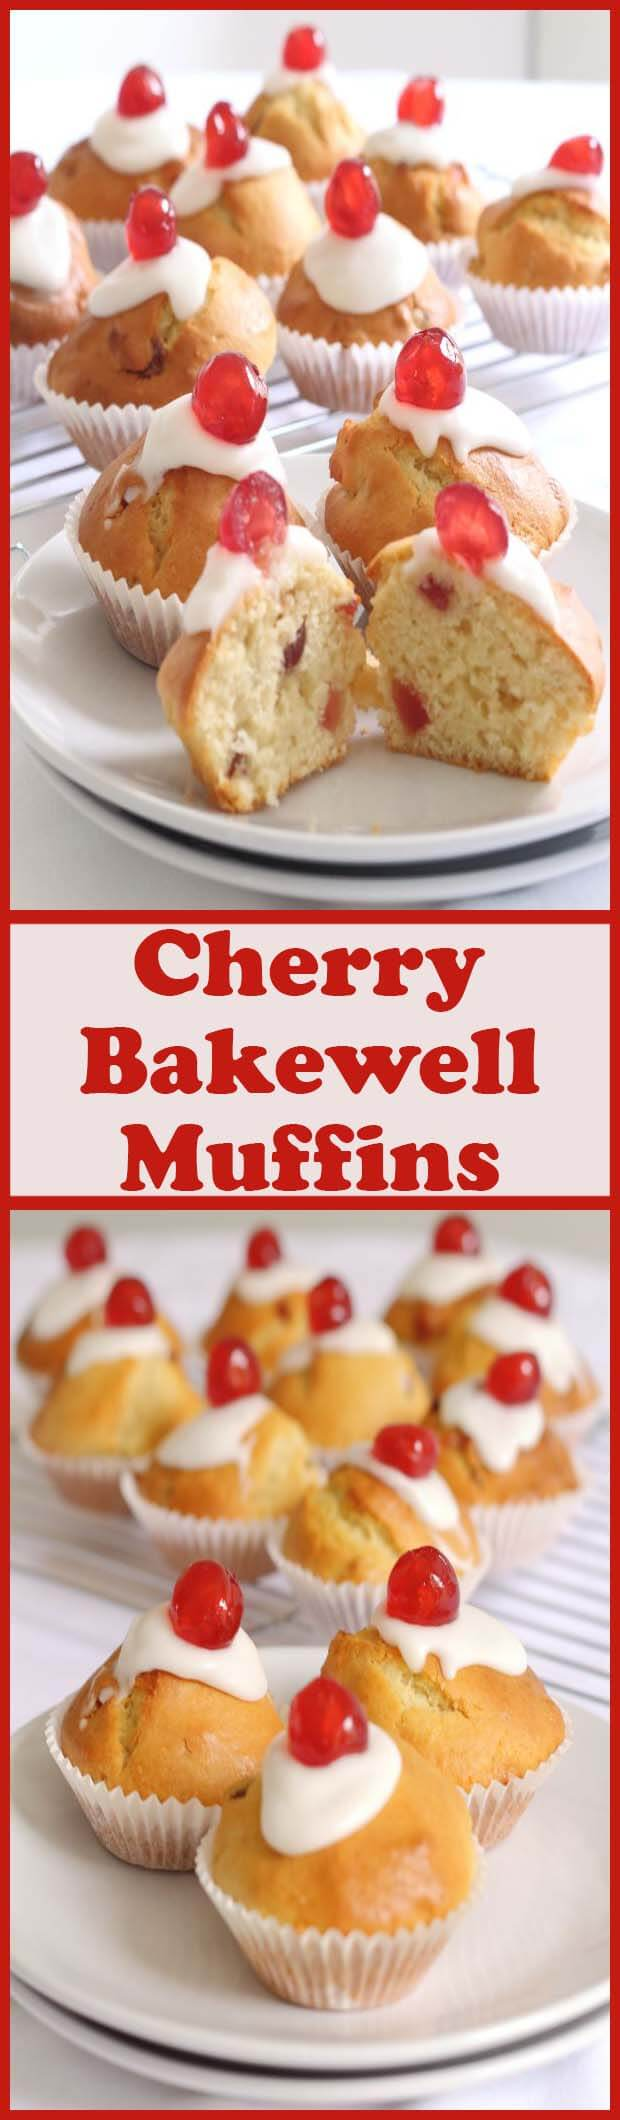 These cherry bakewell muffins are simply fabulous! With a light fluffy texture, a delicious icing topping and a sweet cherry to top, they're my take on the classic bakewell tart. If you love those, try these, plus they won't affect your waistline as much being only 200 calories each!